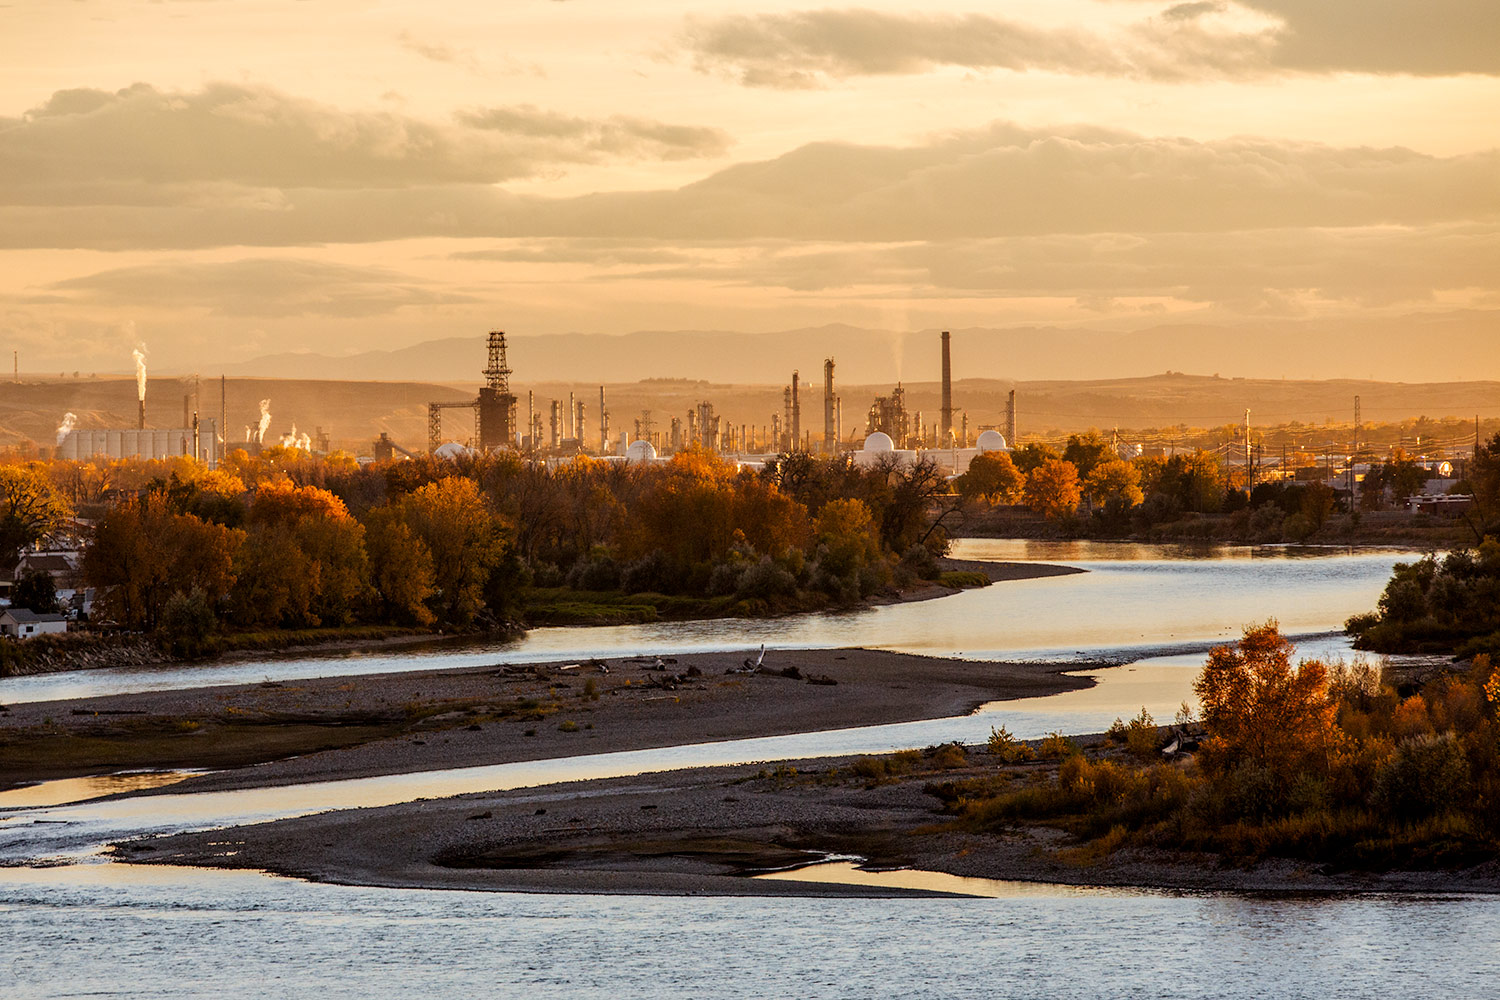 The view looking south over the Yellowstone River towards autumn trees and an oil refinery in Billings, Montana at sunset.   → Buy a Print    or   License Photo